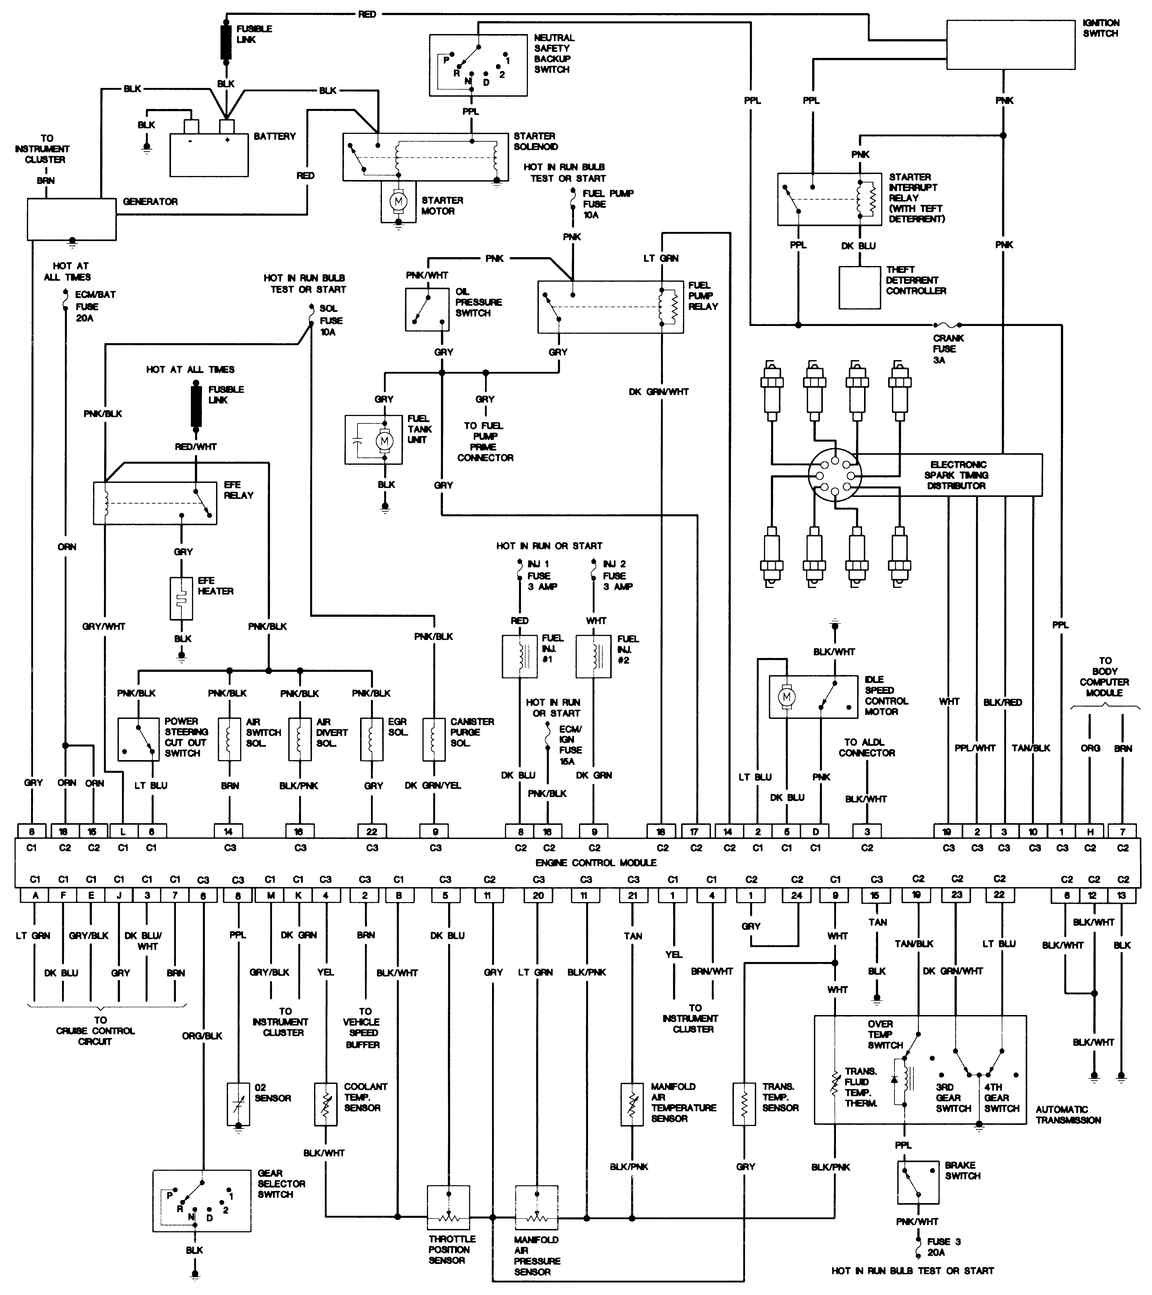 fleetwood rv wiring diagram awesome fuel injector wiring diagram new 1995 fleetwood rv wiring diagram of fleetwood rv wiring diagram?w\\\\\\\=500 1995 fleetwood bounder wiring diagram wiring diagram explained